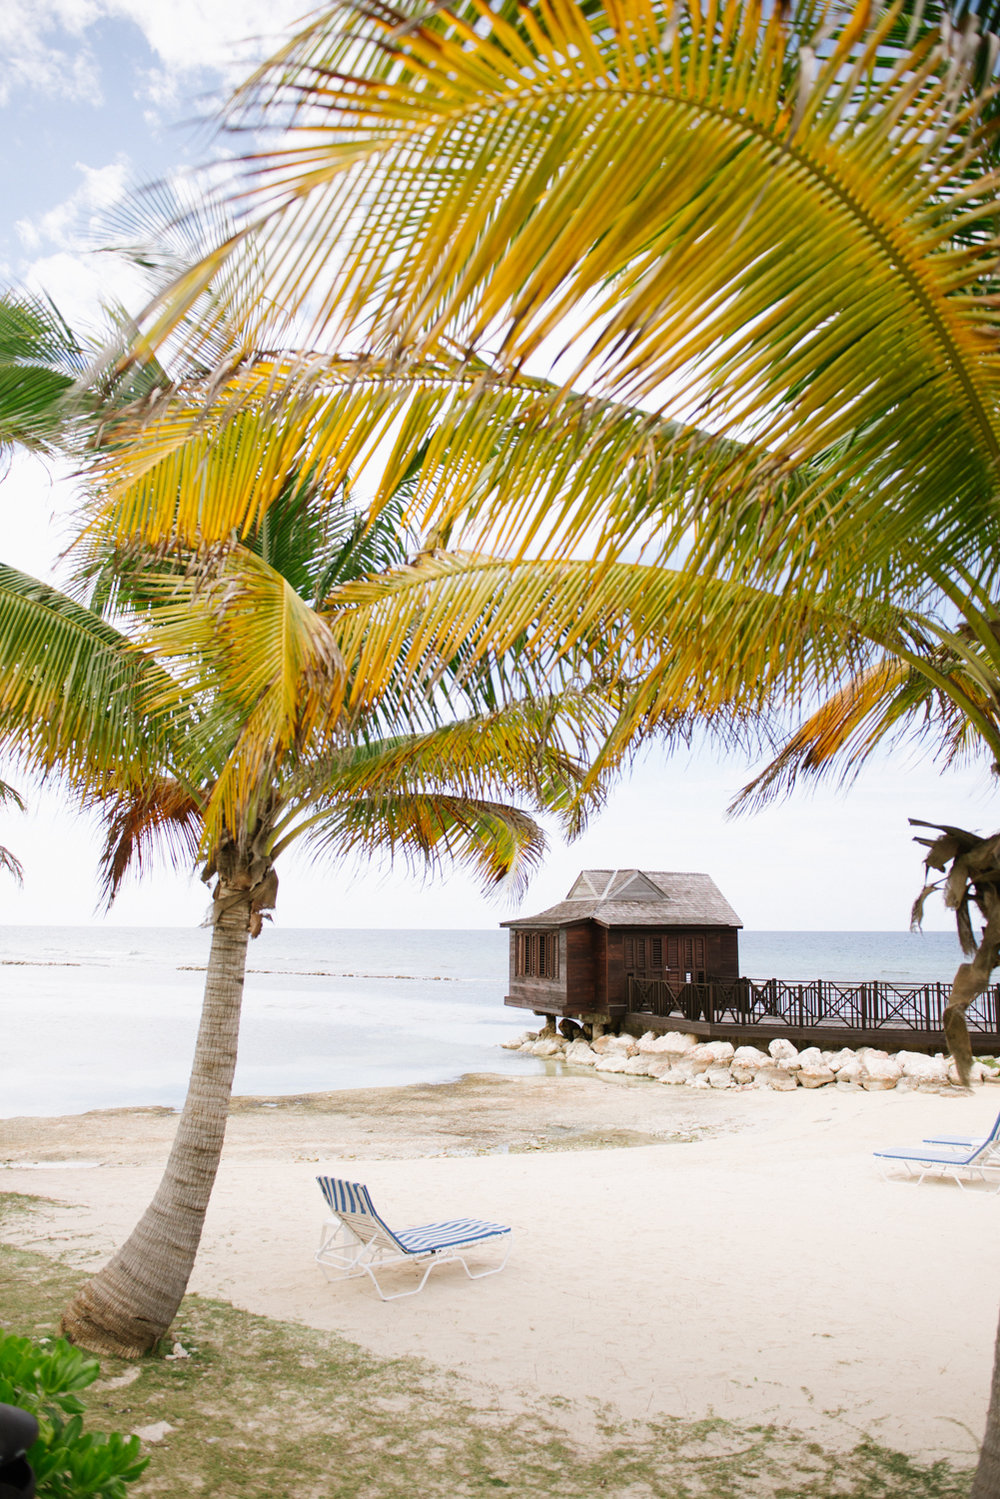 Idyllic beach cabana with palm trees in Montego Bay, Jamaica